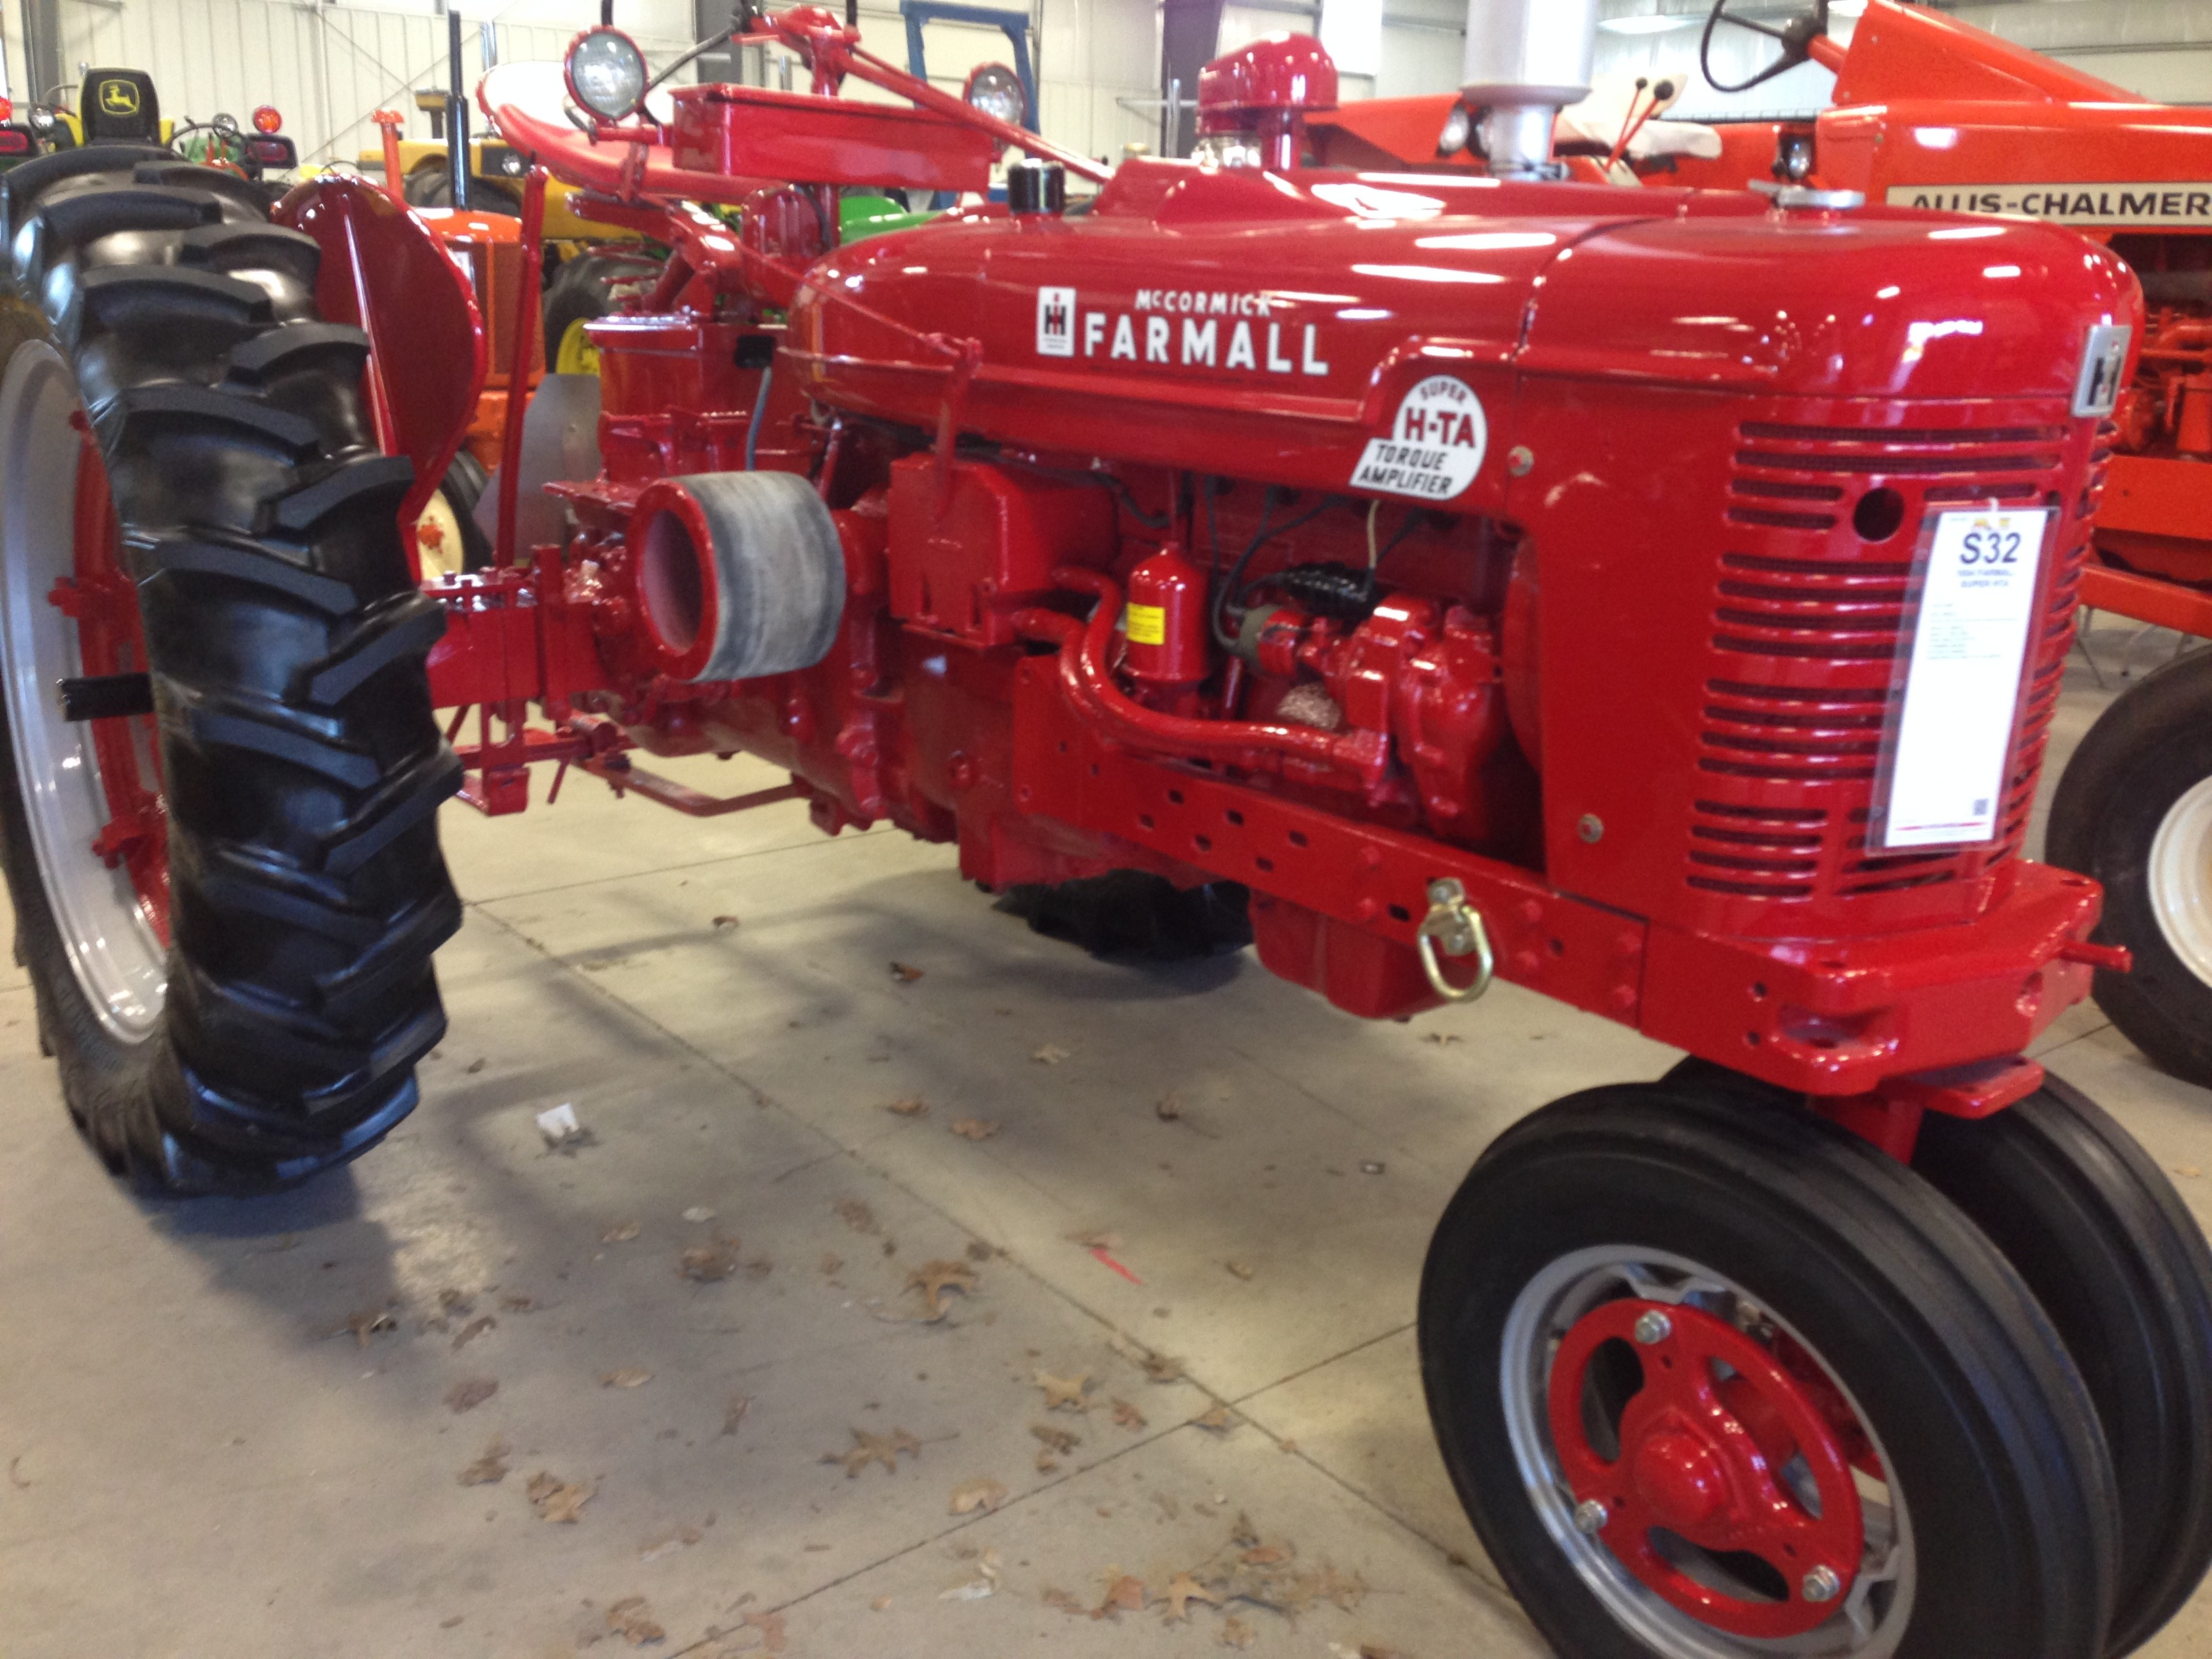 He s also built a Farmall Super HD TA tractor which was a pilation of a Farmall Super H 350 sel engine and 300 rear end